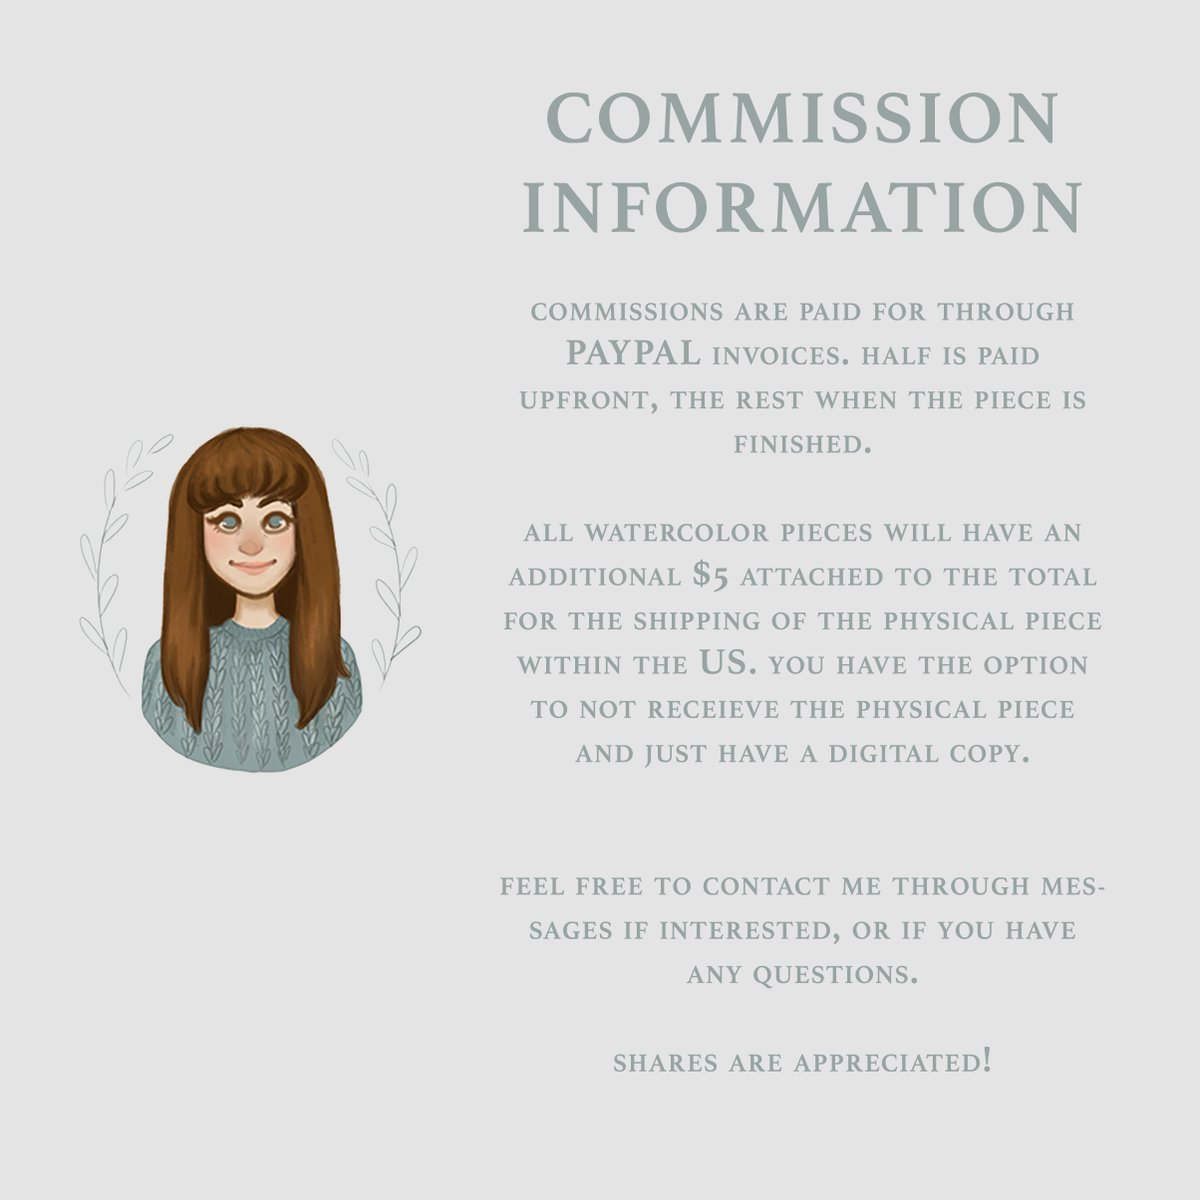 ✨COMMISSIONS INFORMATION✨  I currently have 5 SPOTS available! Message me if interested, or if you have any questions! Sharing is greatly appreciated!!   #commissionsopen